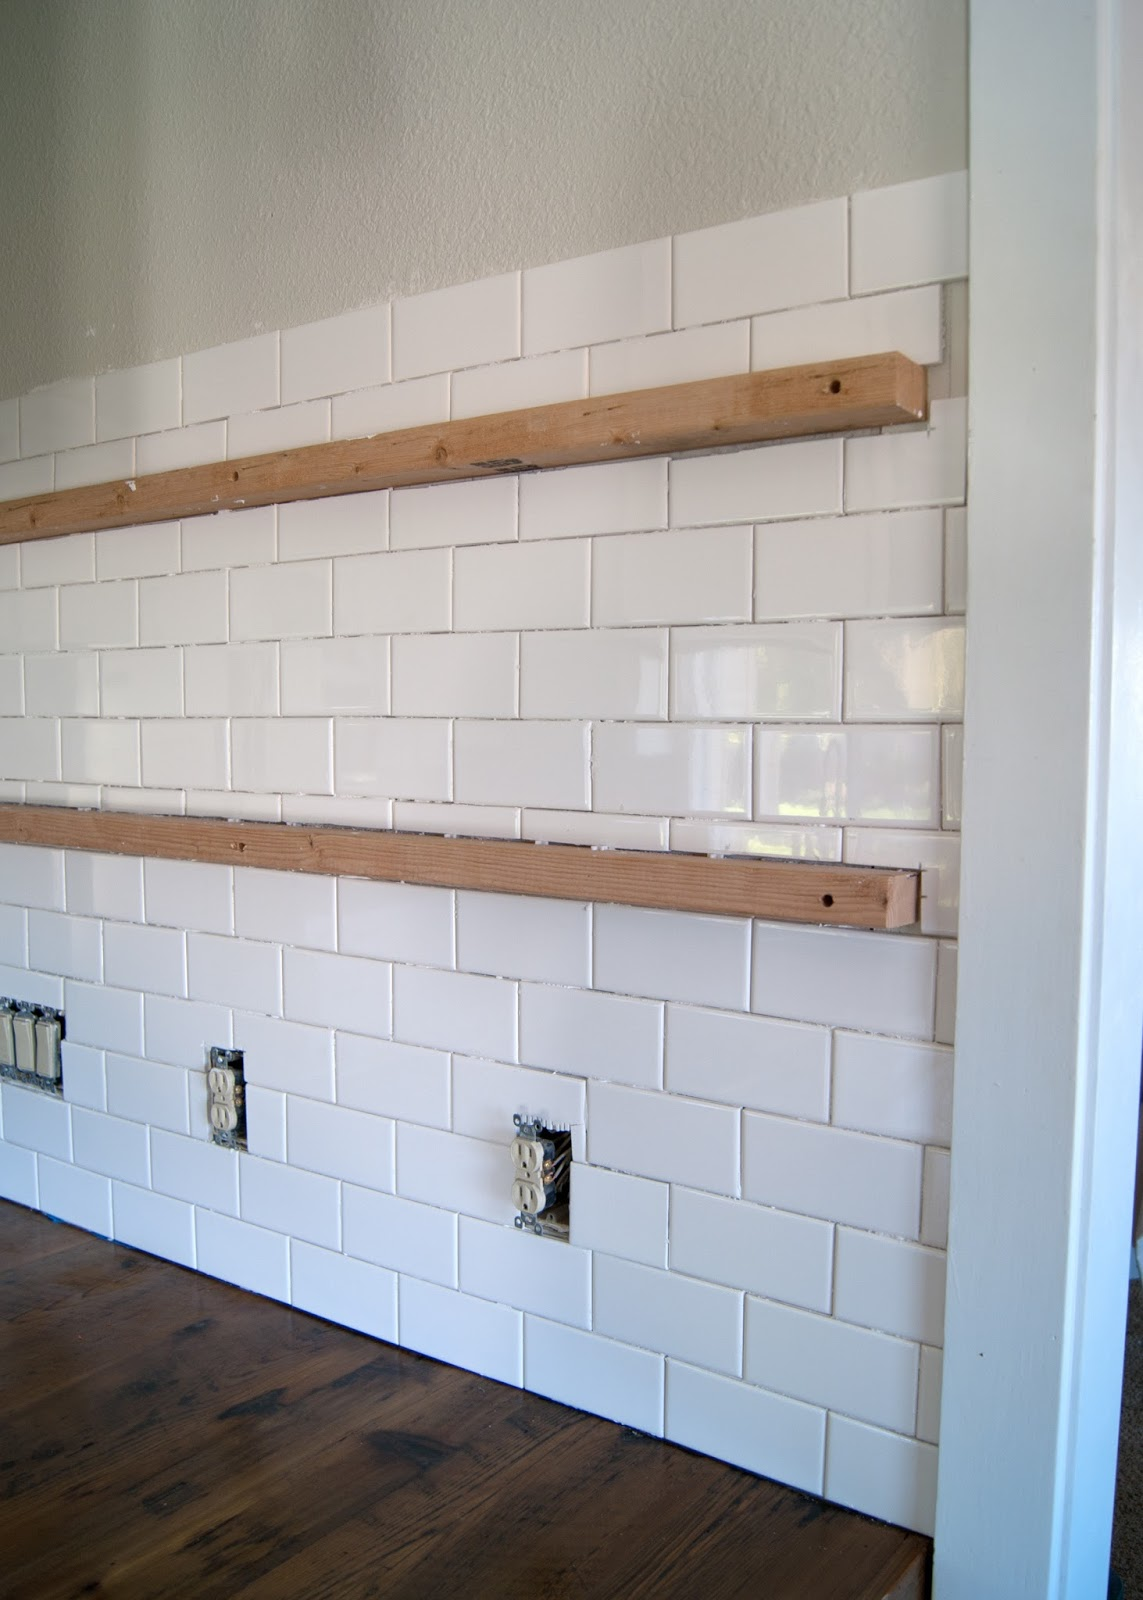 Subway tile installation tips on grouting with fusion pro im doublecrazyfo Images